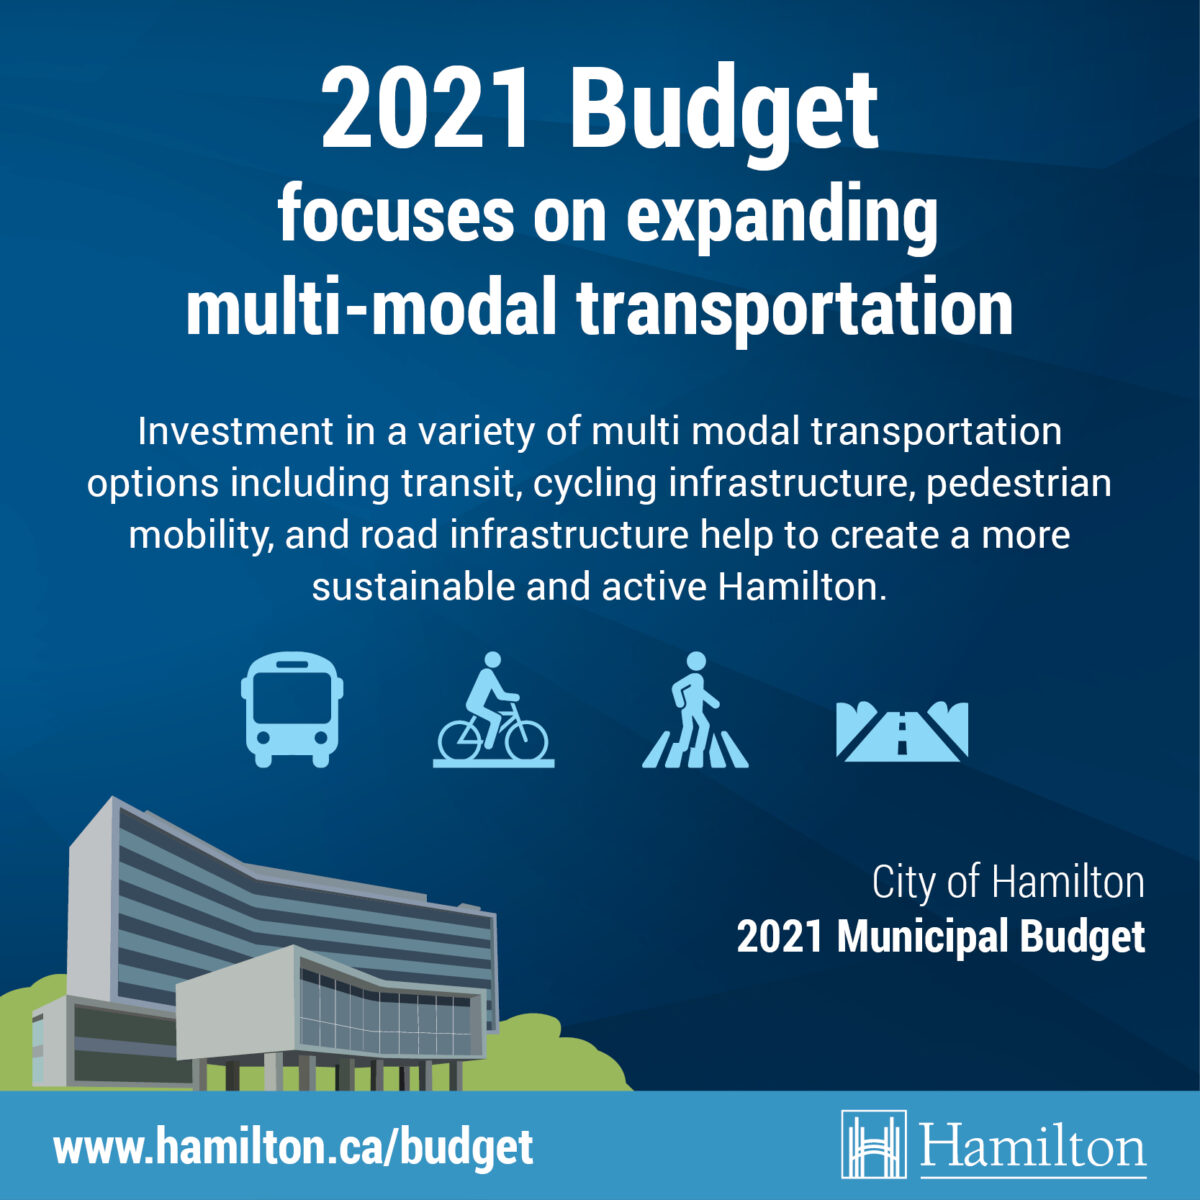 Increased investments in multi-modal transportation infrastructure proposed for 2021 budget